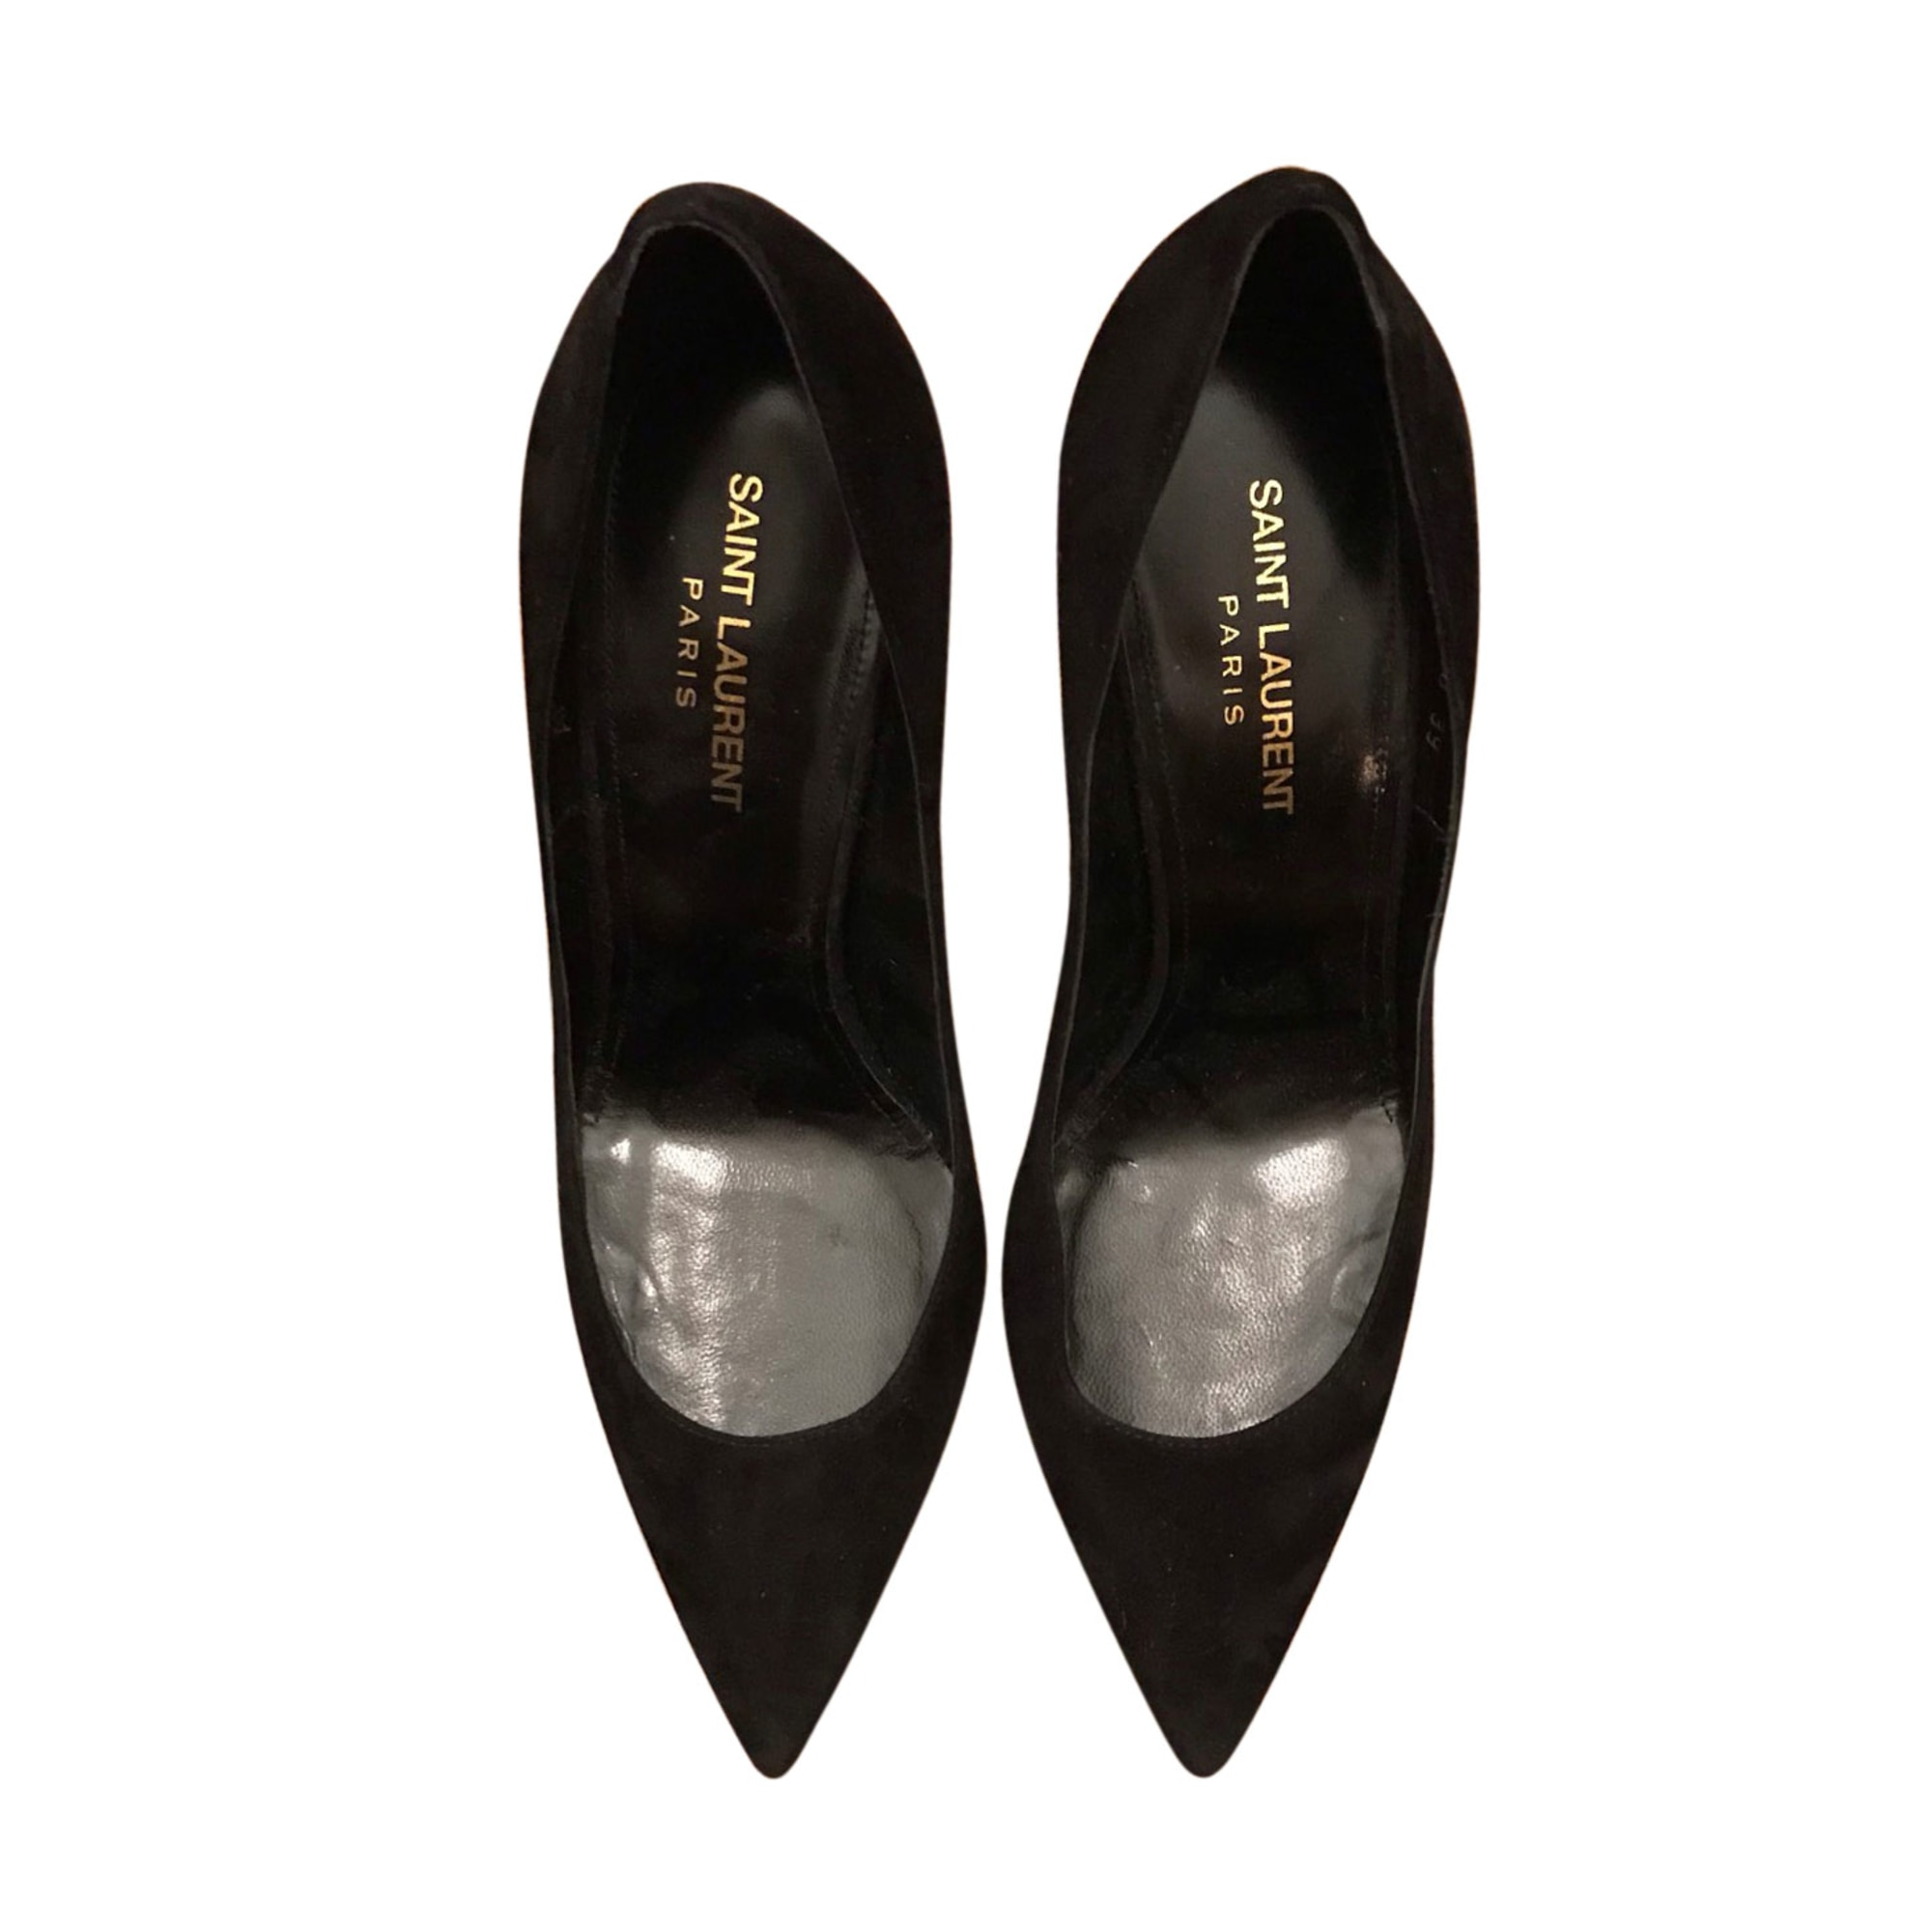 Escarpins SAINT LAURENT Noir